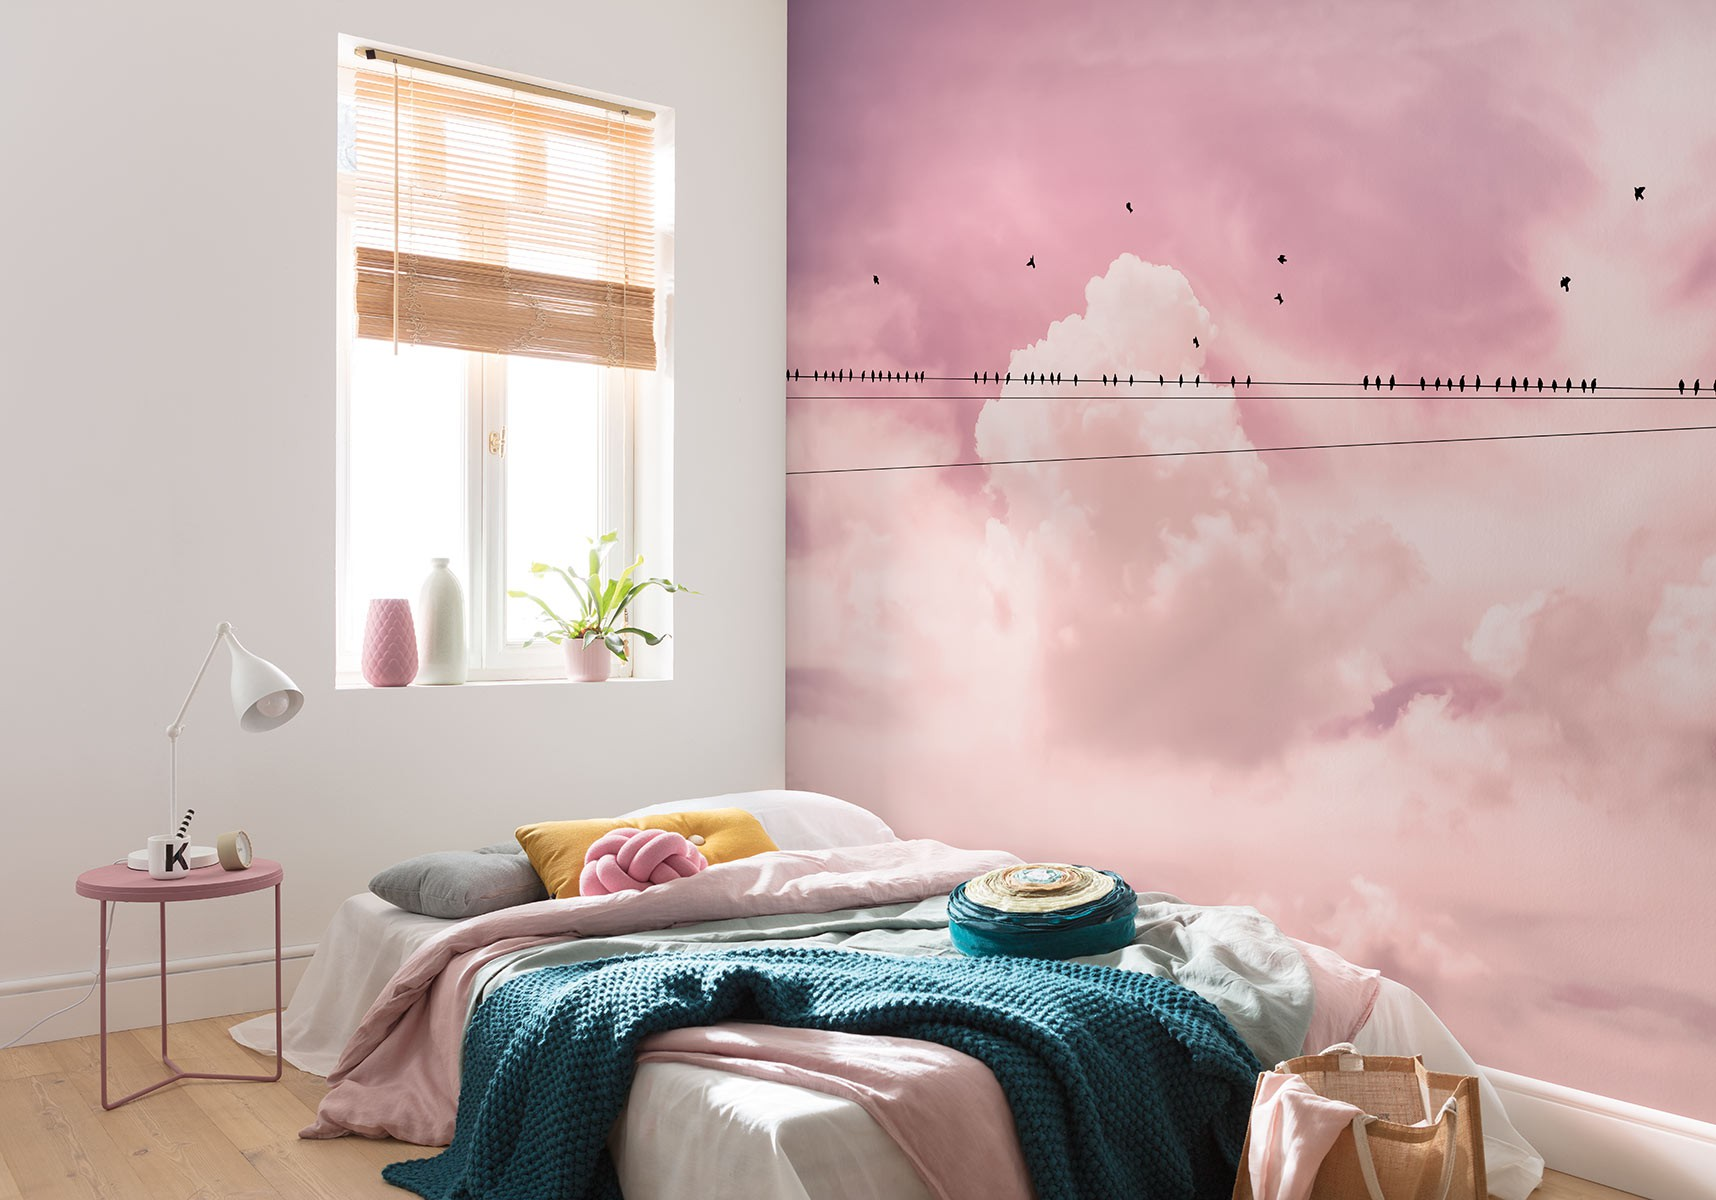 Full Size of Cloud Wire Rosa Wandfarbe Himmel Wolken 1797036 Hd Küche Wohnzimmer Wandfarbe Rosa